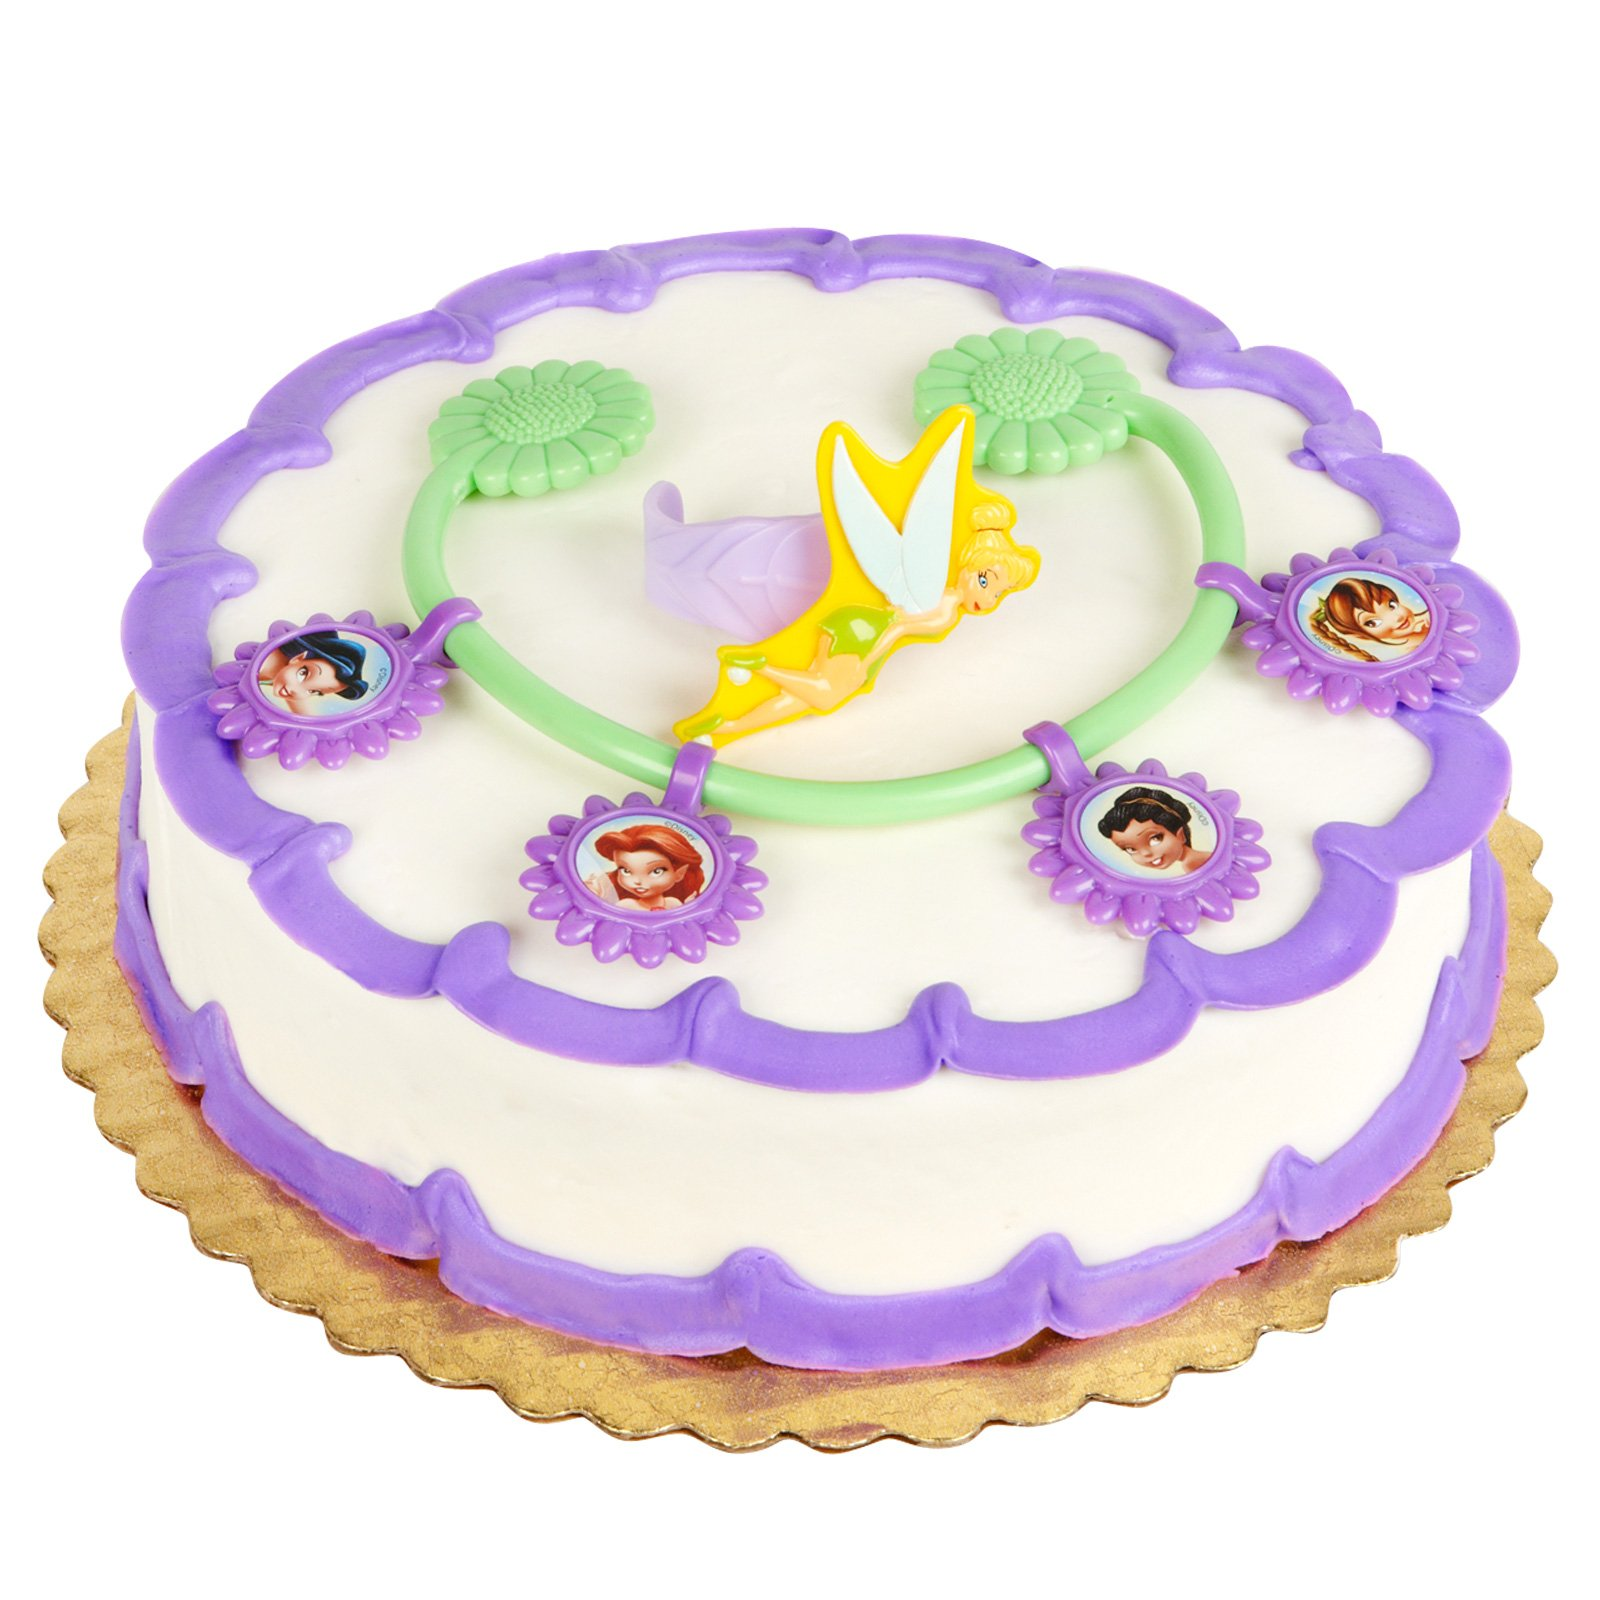 Tinker Bell and Fairy Friends Cake Topper